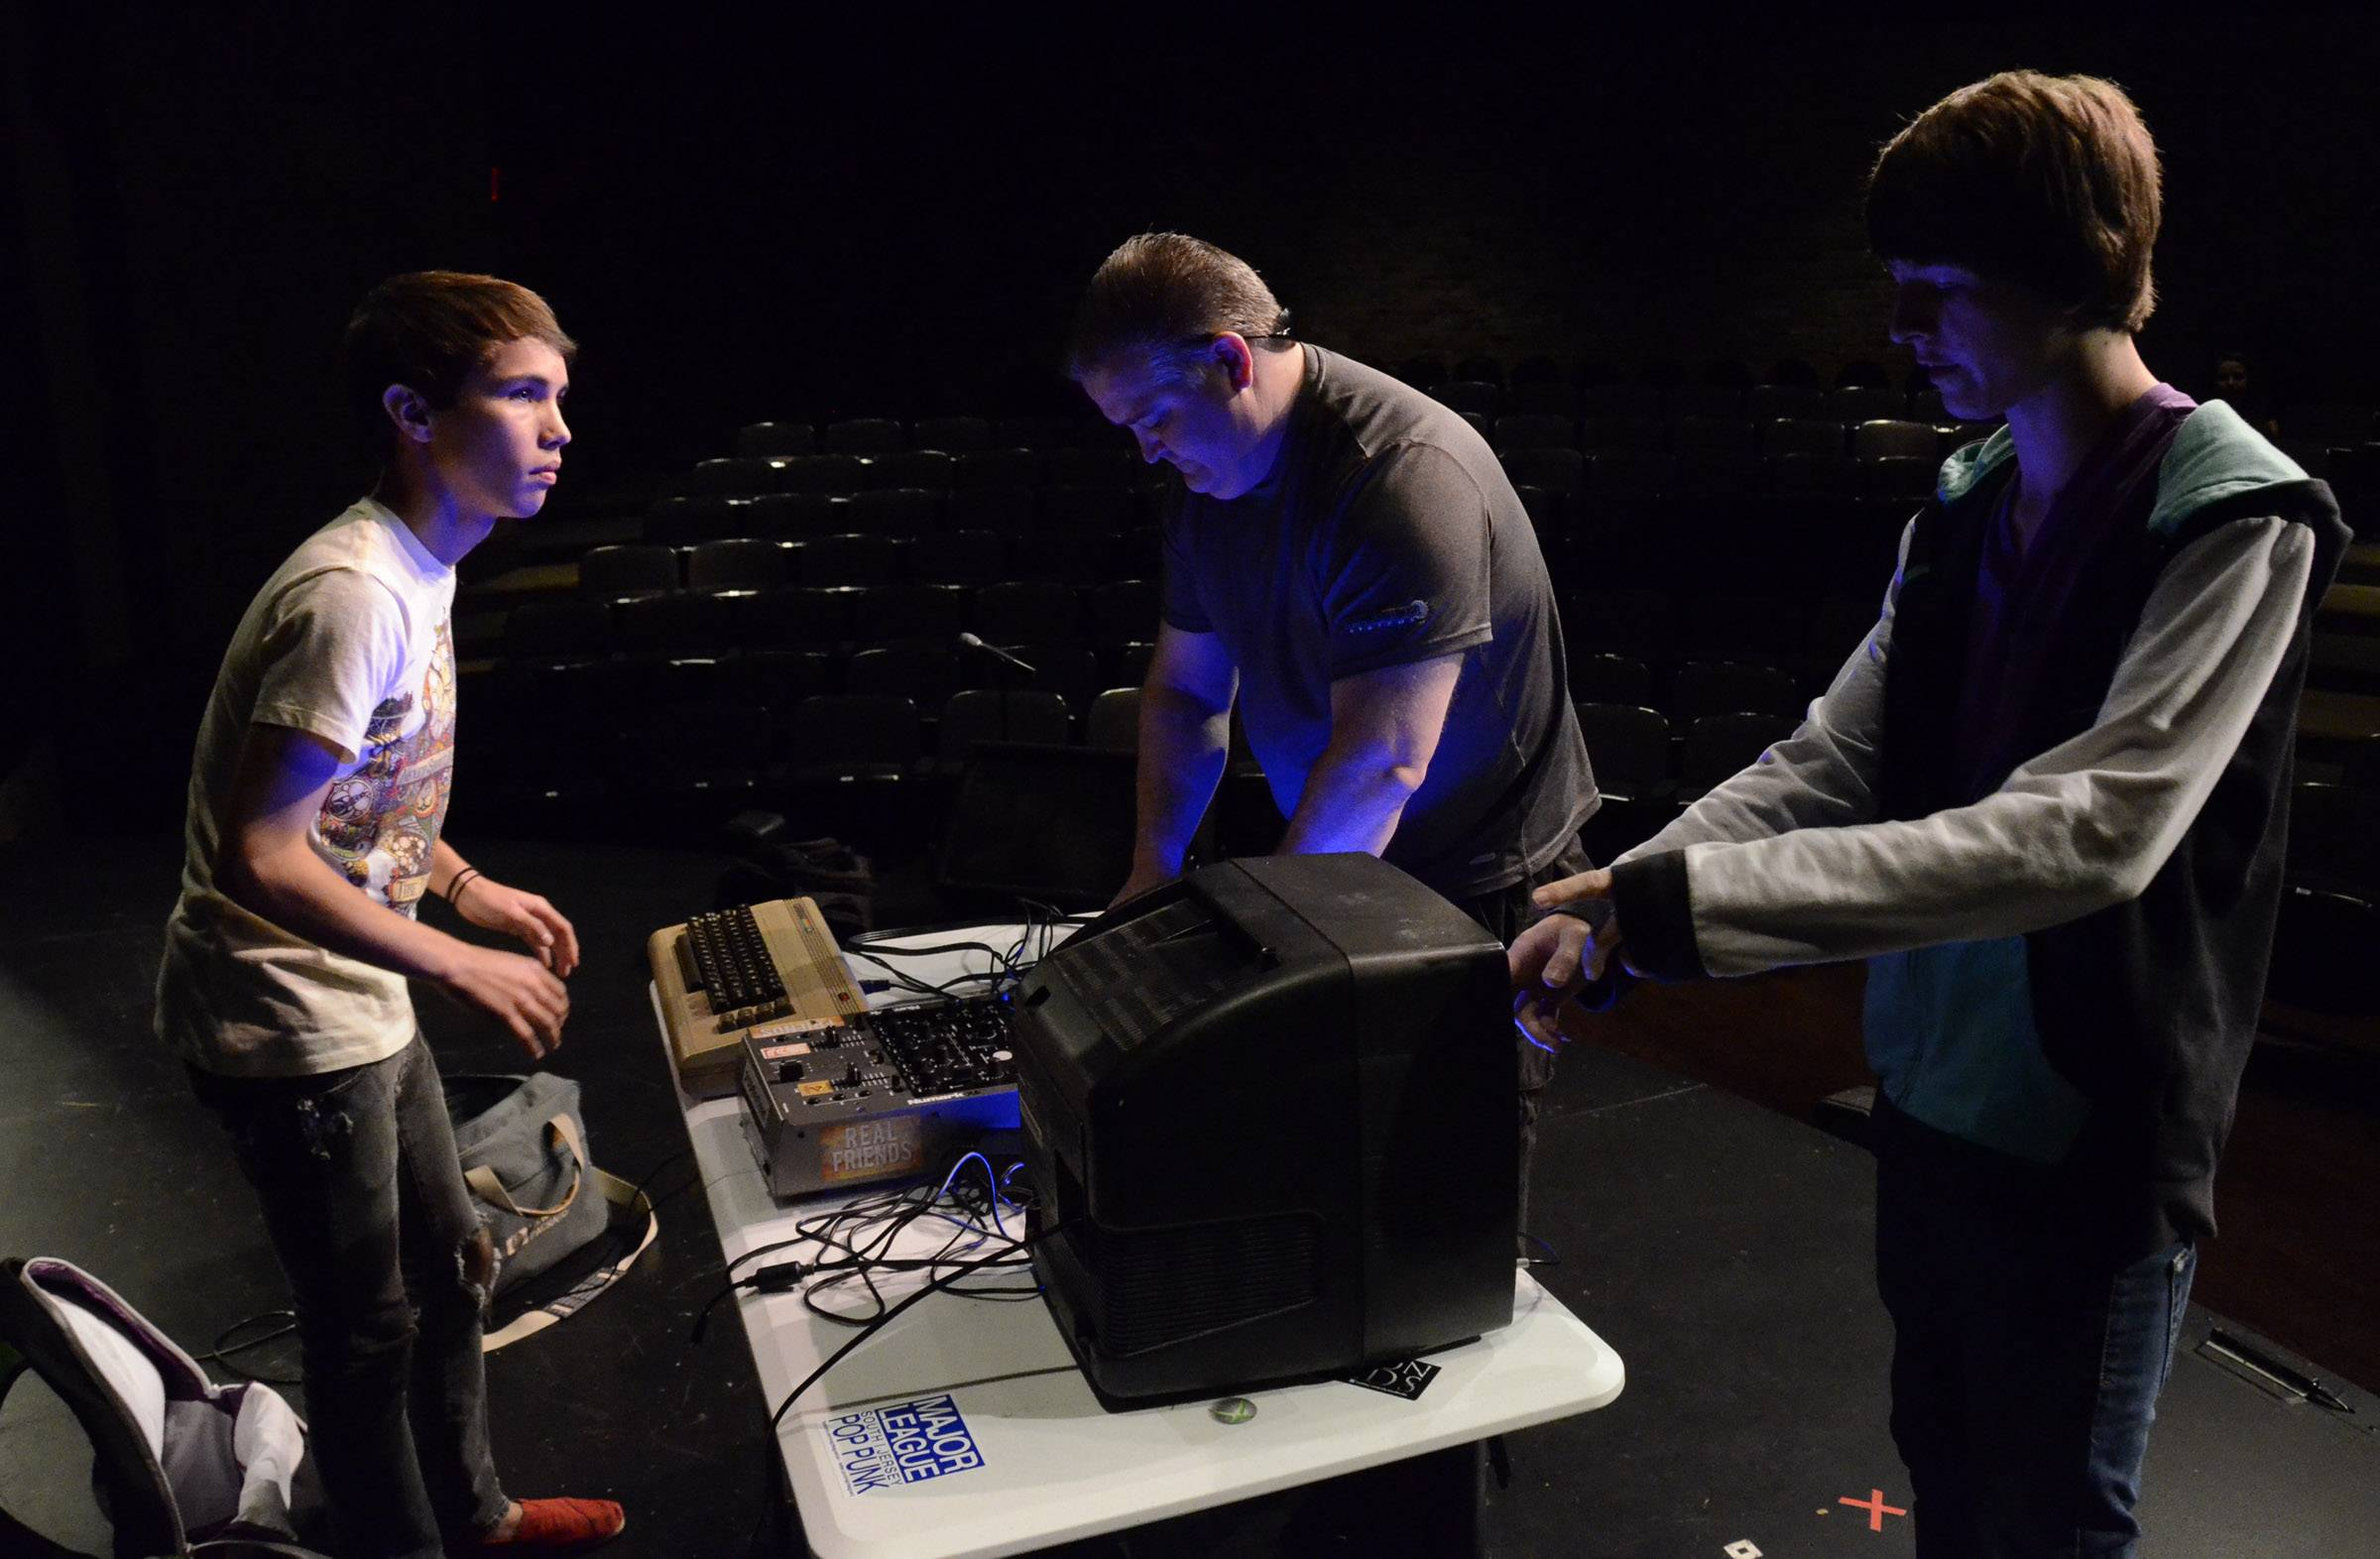 """Sophmore 64"" duo Jake Basala, 16, right, and Calvin Hughes, 17, both of Lindenhurst, and a parent set up a Commodore 64 and two Game Boys to create music Friday during auditions for Suburban Chicago's Got Talent in Arlington Heights."